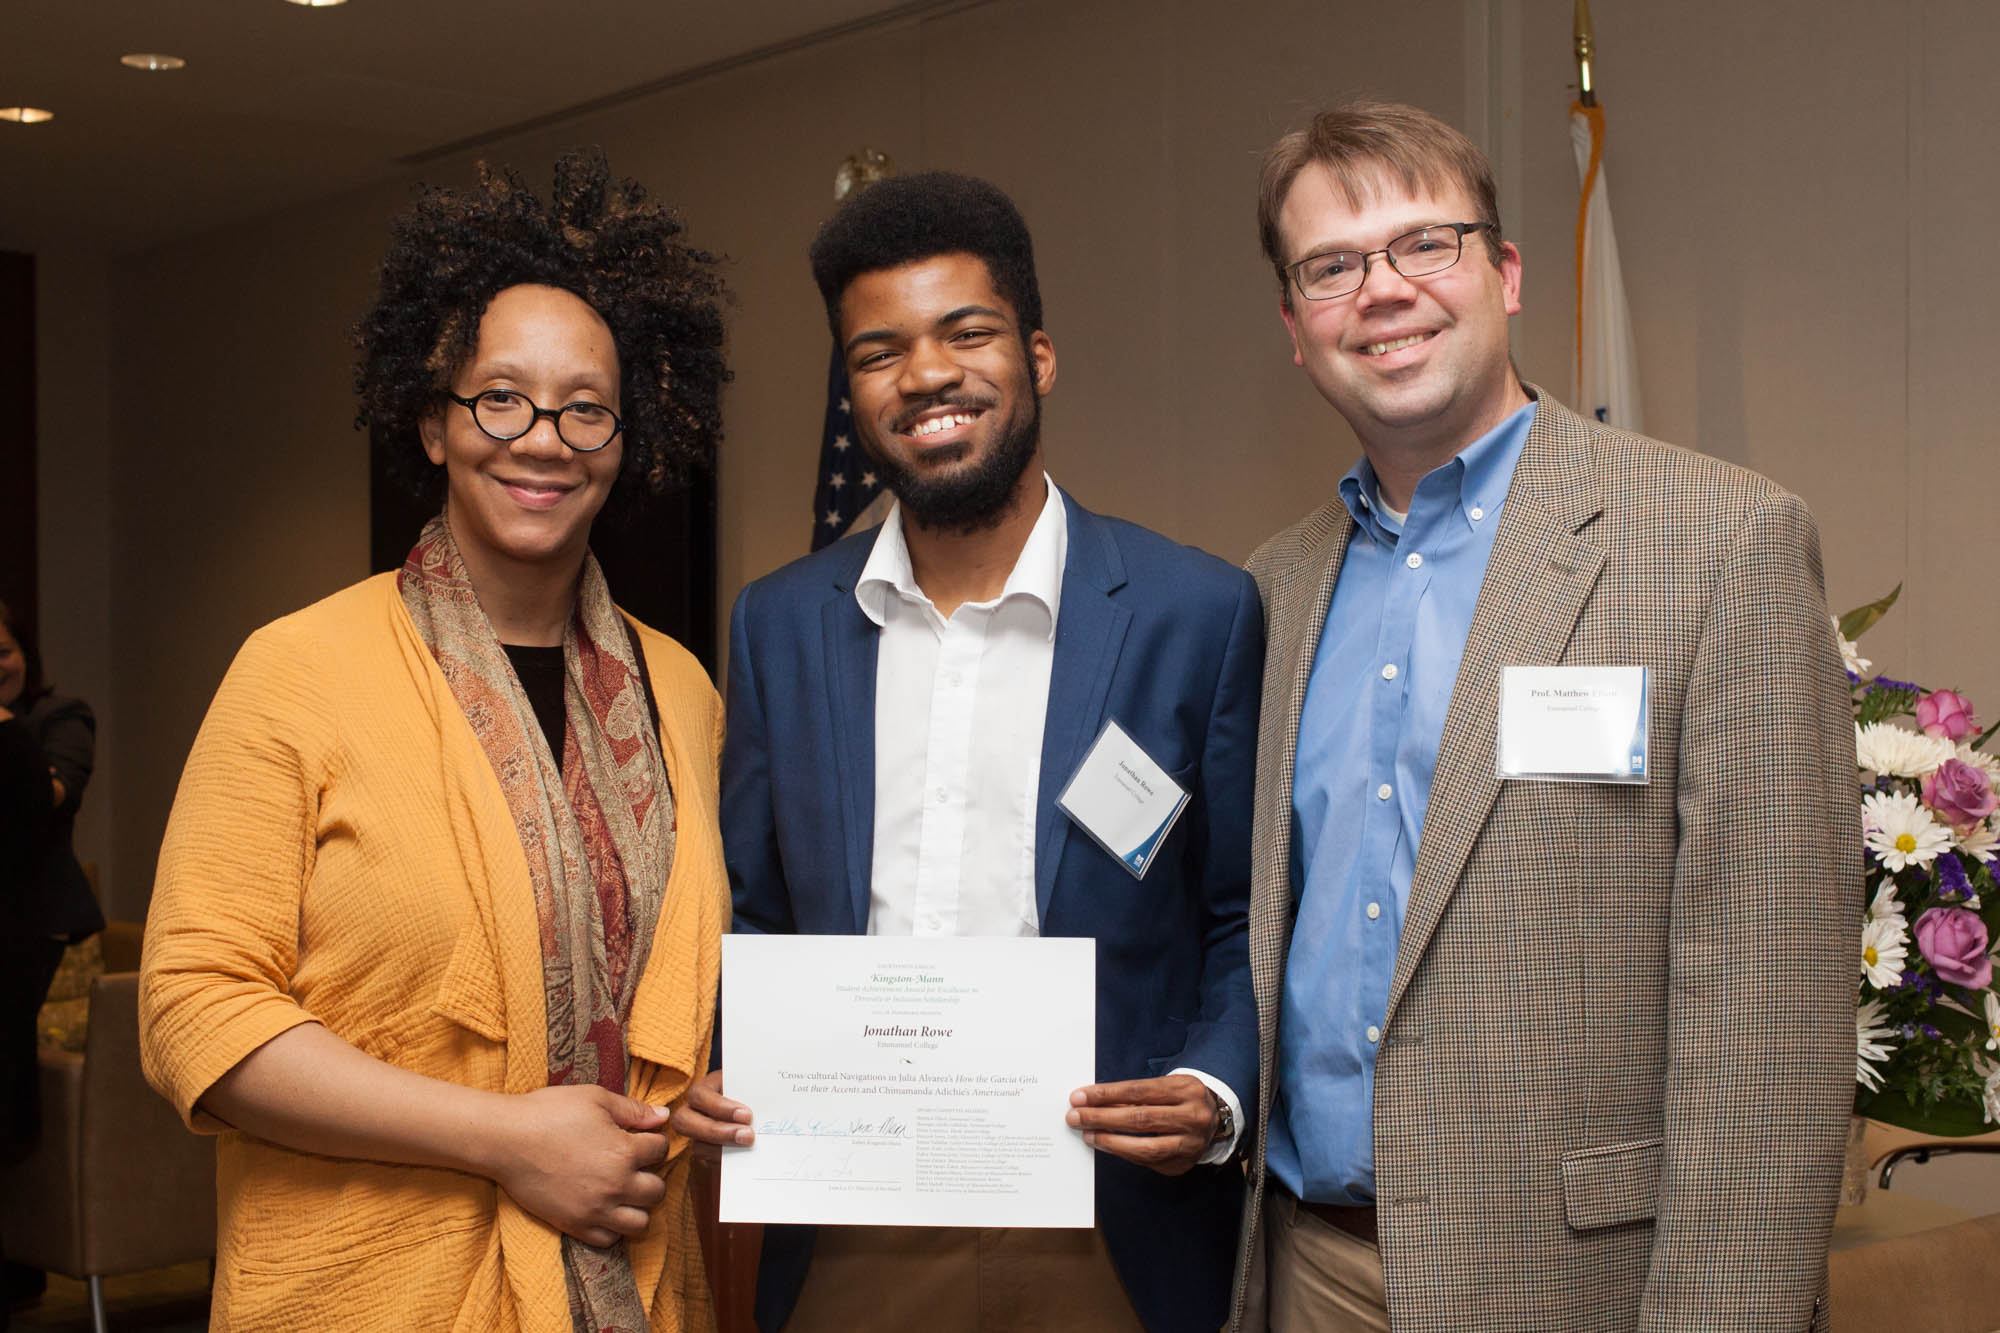 Jonathan Rowe '18 with his faculty advisor Assistant Professor of English Monique-Adelle Callahan (left) and Associate Professor of English and Department Chair Matthew Elliott (right).